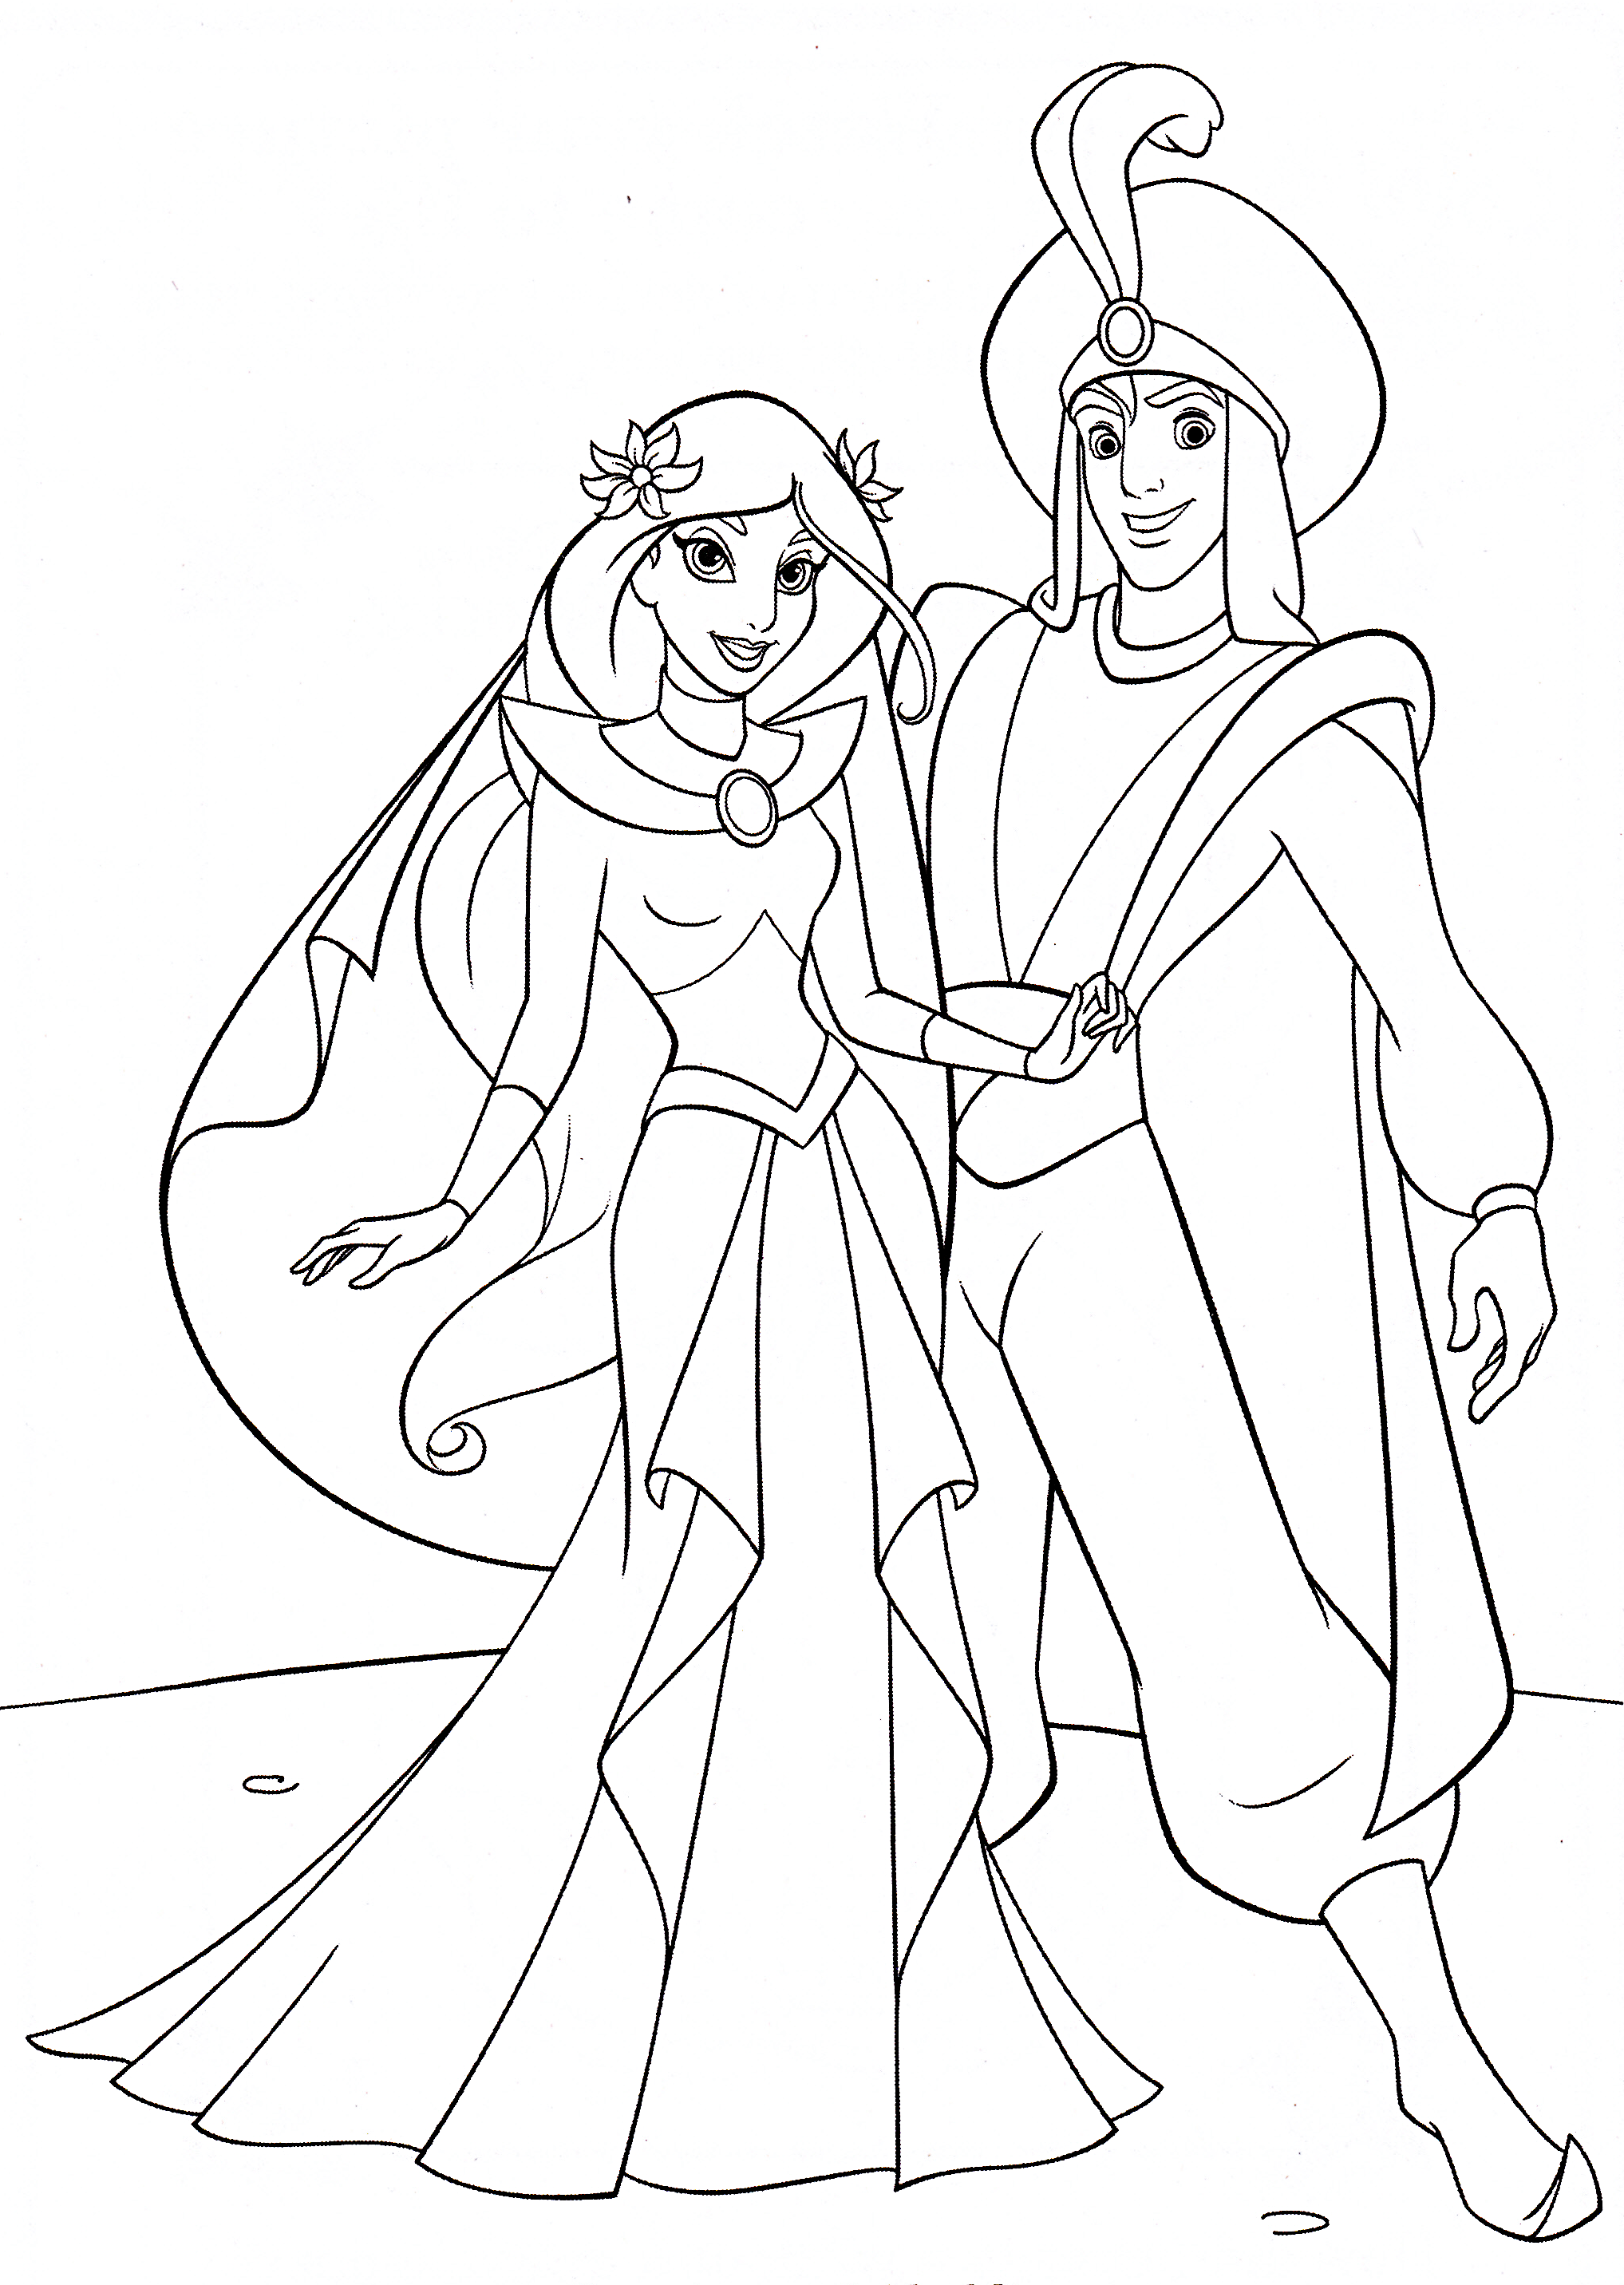 Colouring Pages Disney Jasmine : Disney princess coloring pages jasmine home